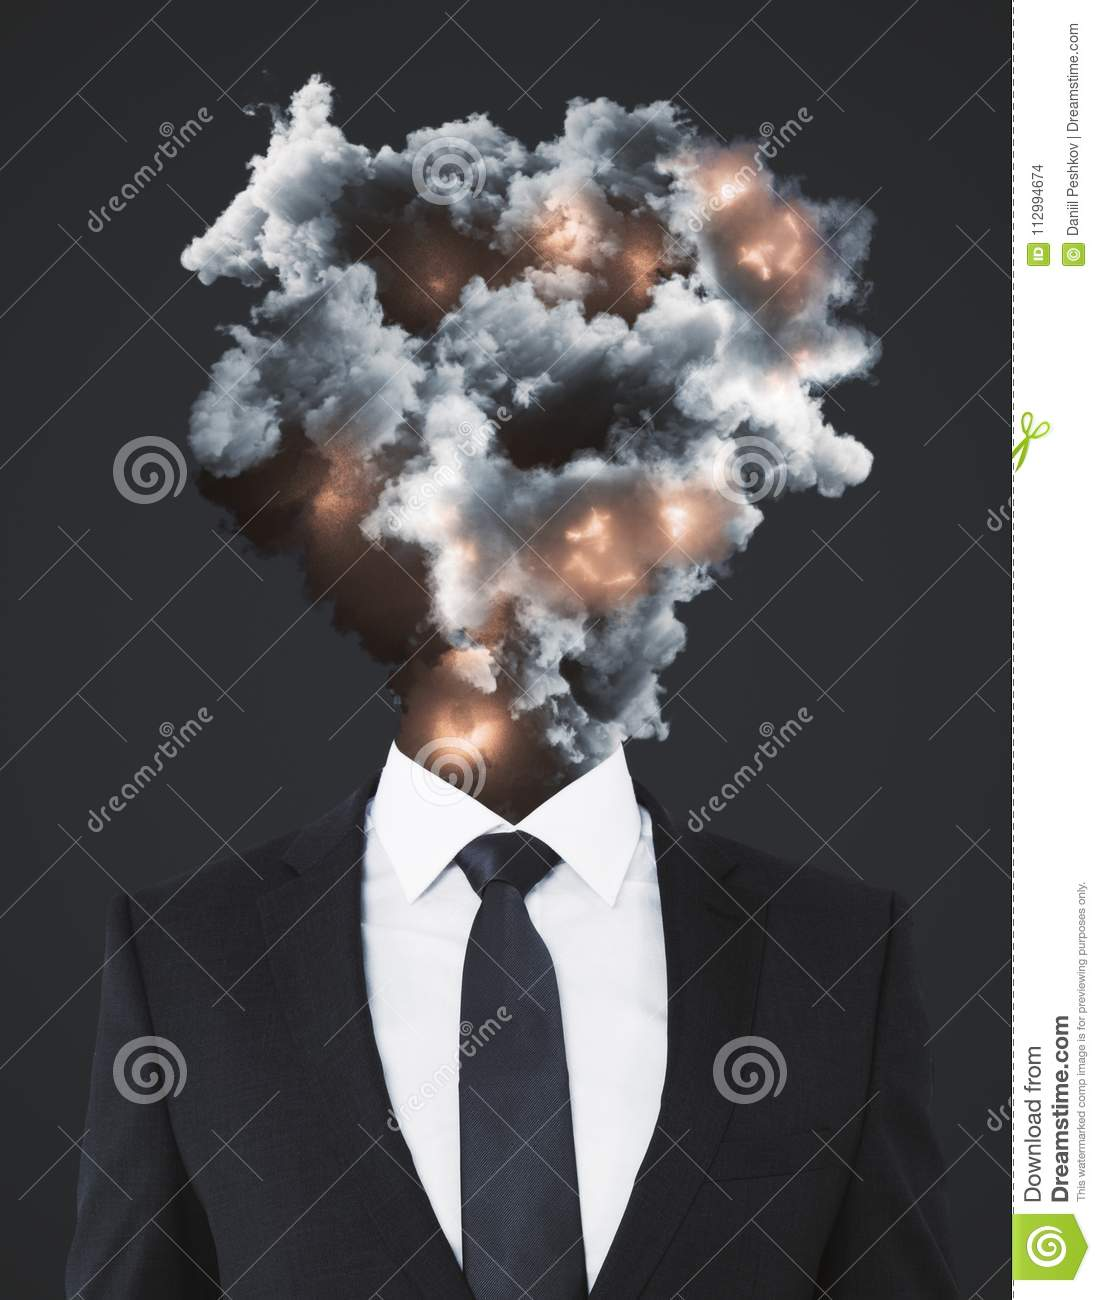 Abstract Disaster And Stress Wallpaper Stock Photo Image